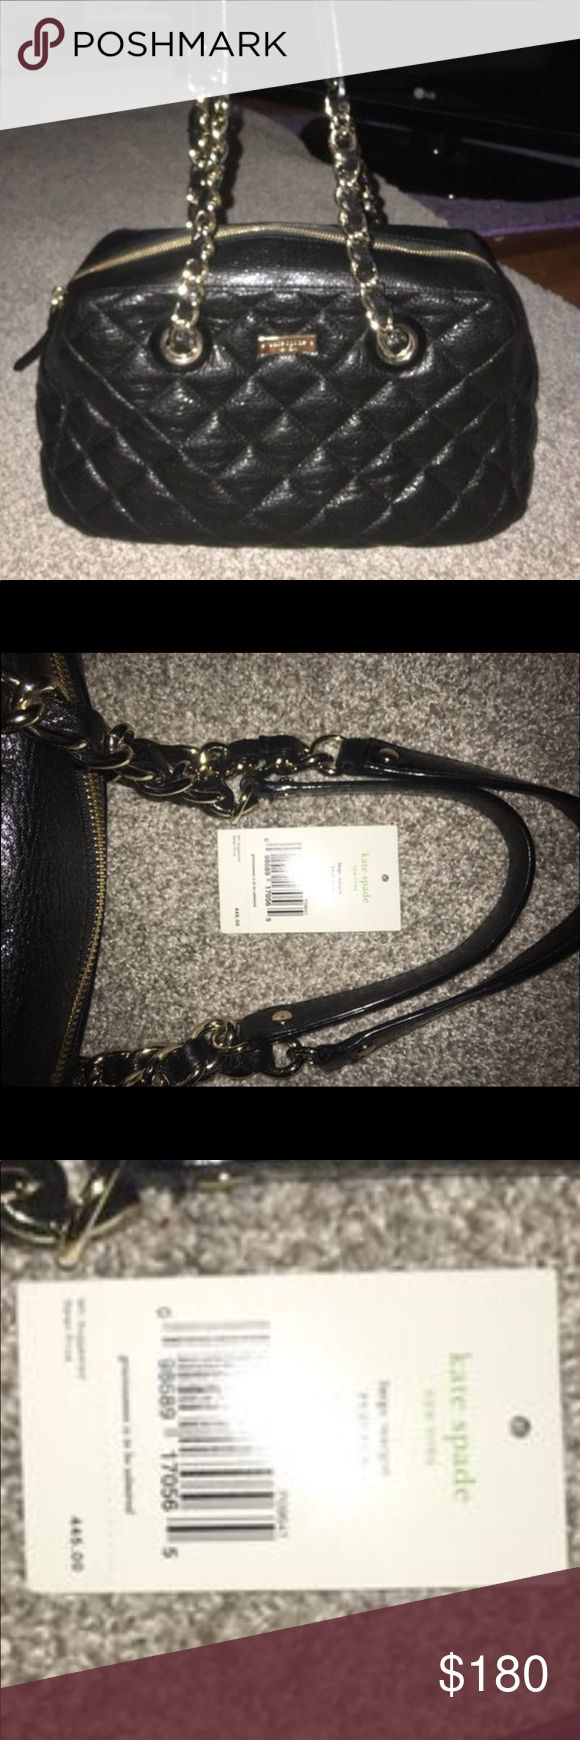 """Kate Spade Large Margot Gold Coast Bag PXRU2168 Black quilted leather with gold hardware. Brand new never used. Perfect condition.  13""""L x 11""""H x 6""""W 10"""" strap drop. Retail price $445 in gift giving condition. kate spade Bags Shoulder Bags"""